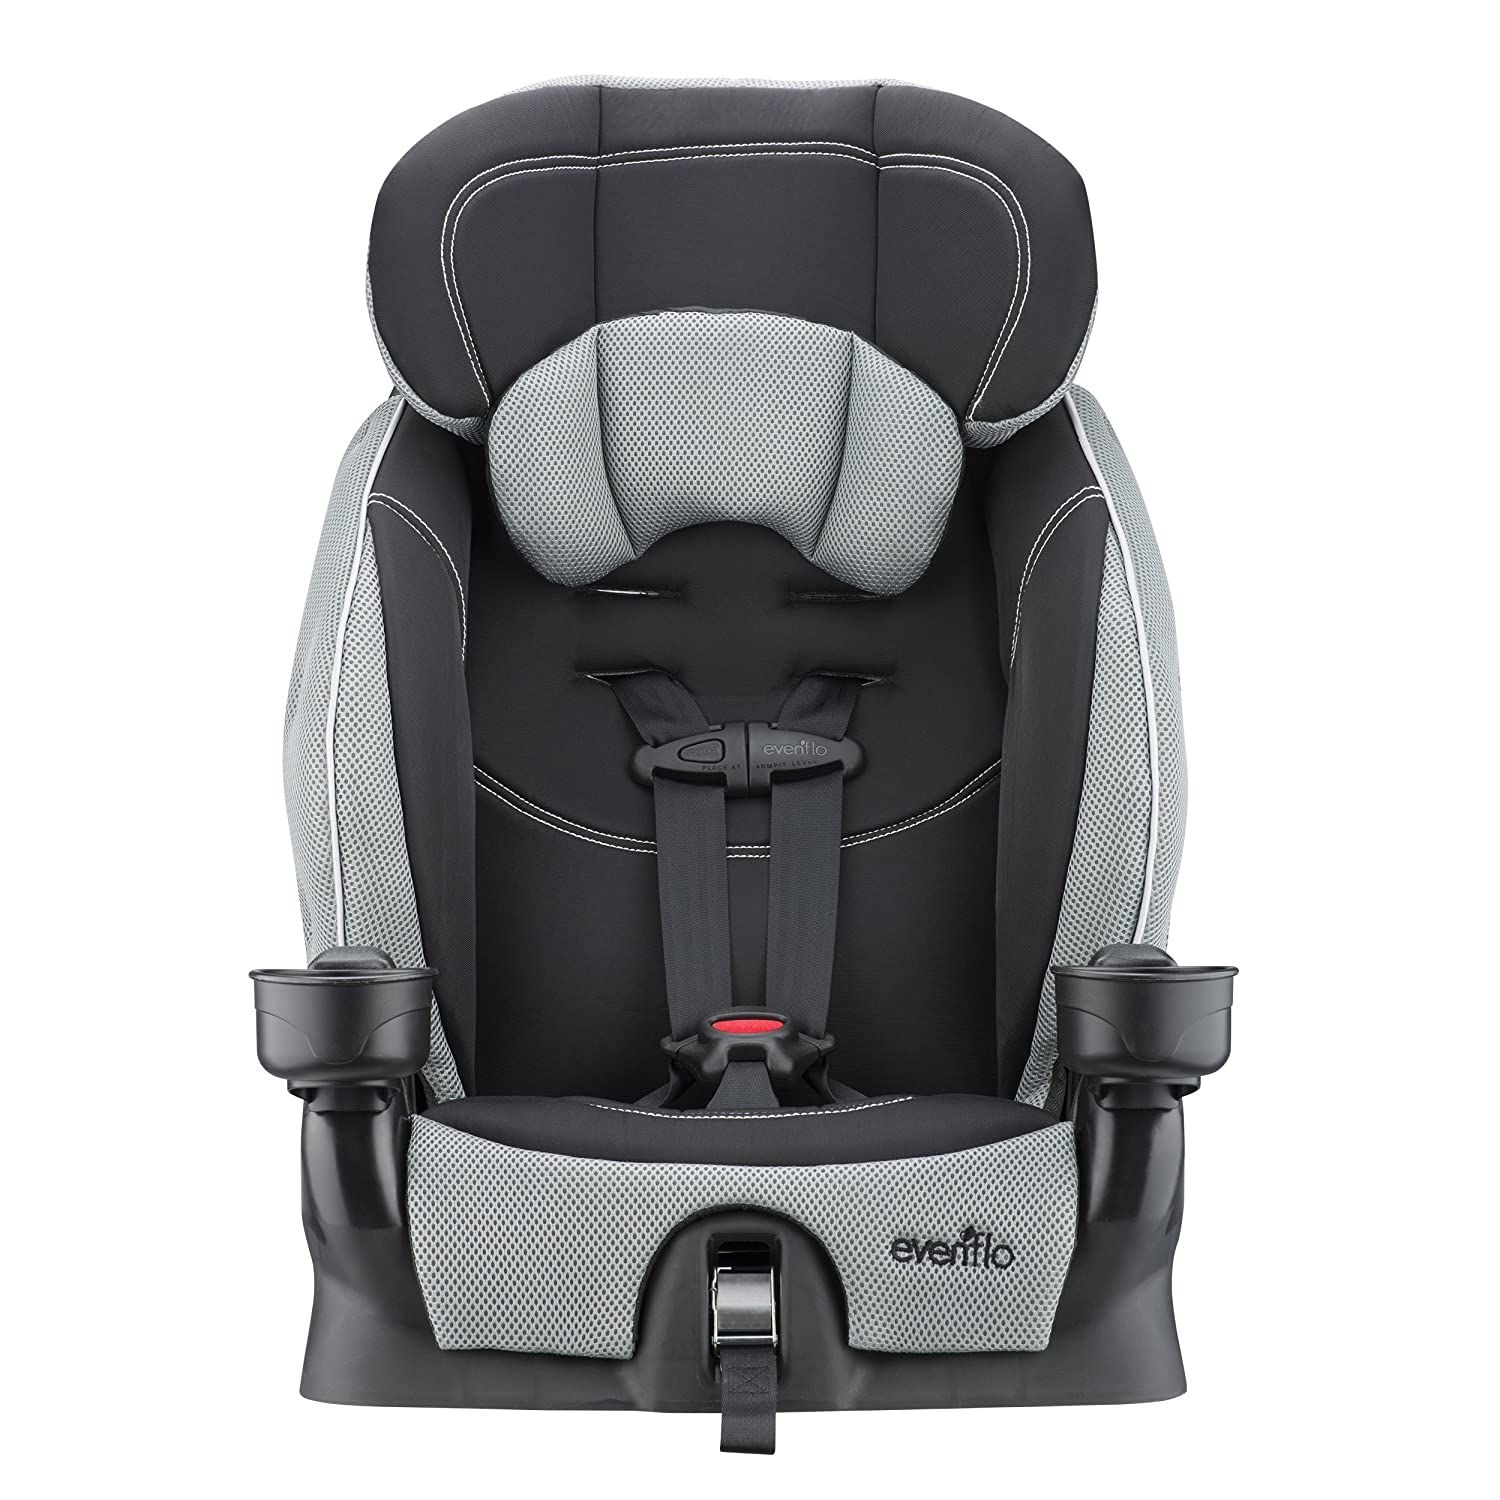 Evenflo Chase Harness Booster Best Seller Booster Seats with 5 Point Harness